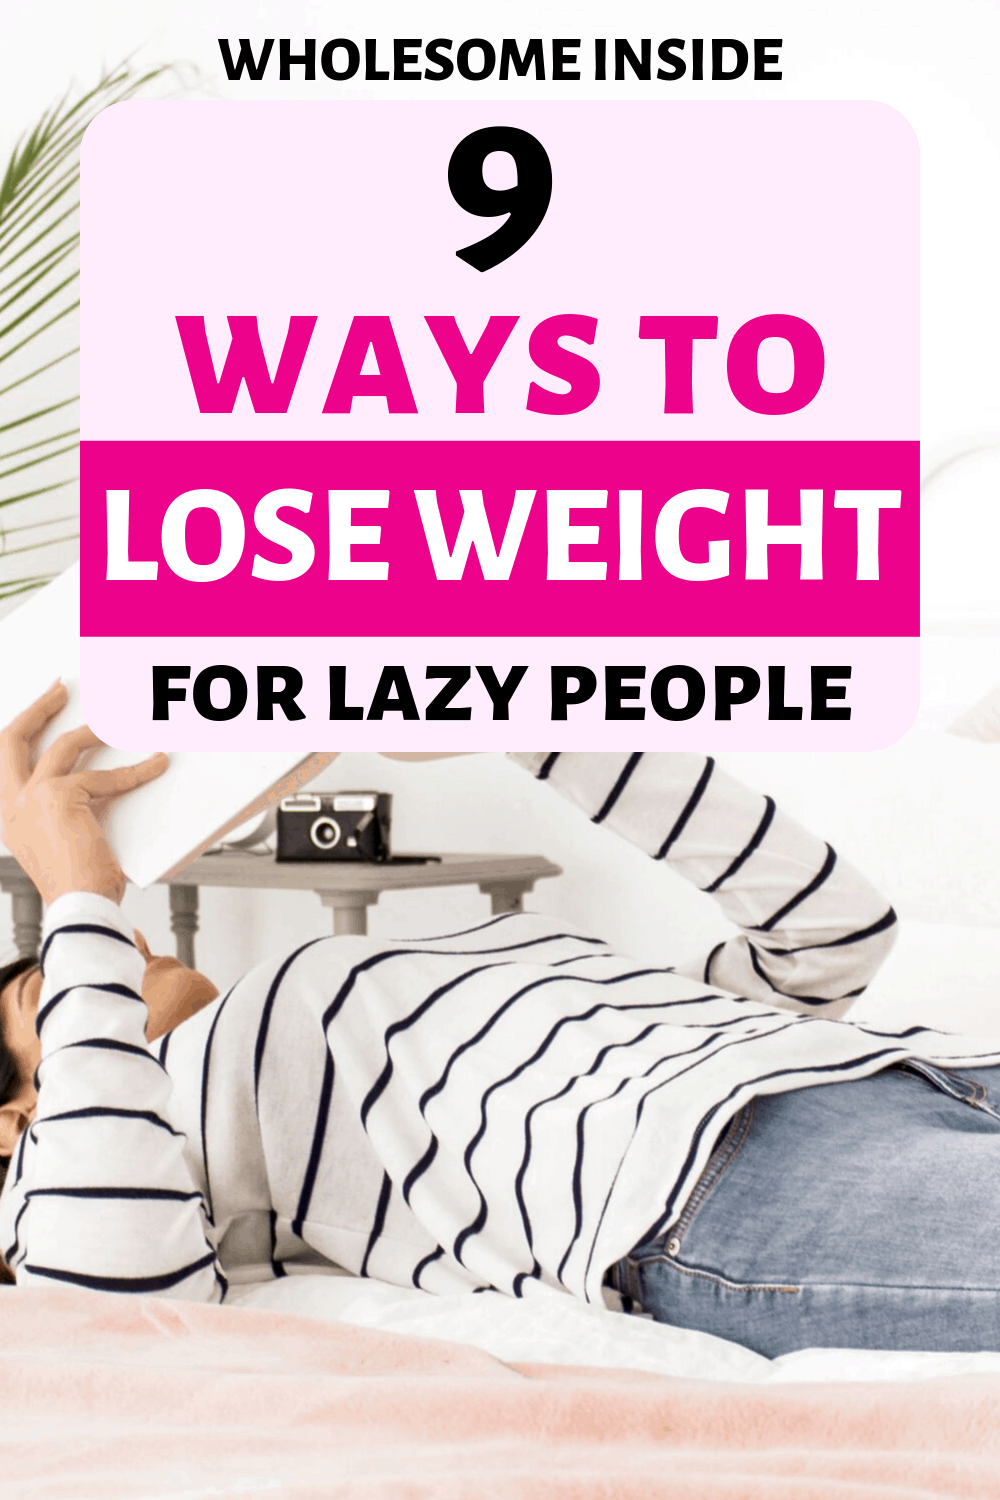 Ways that you can lose weight if you are lazy. Tips and tricks to lose weight quickly without hard work.